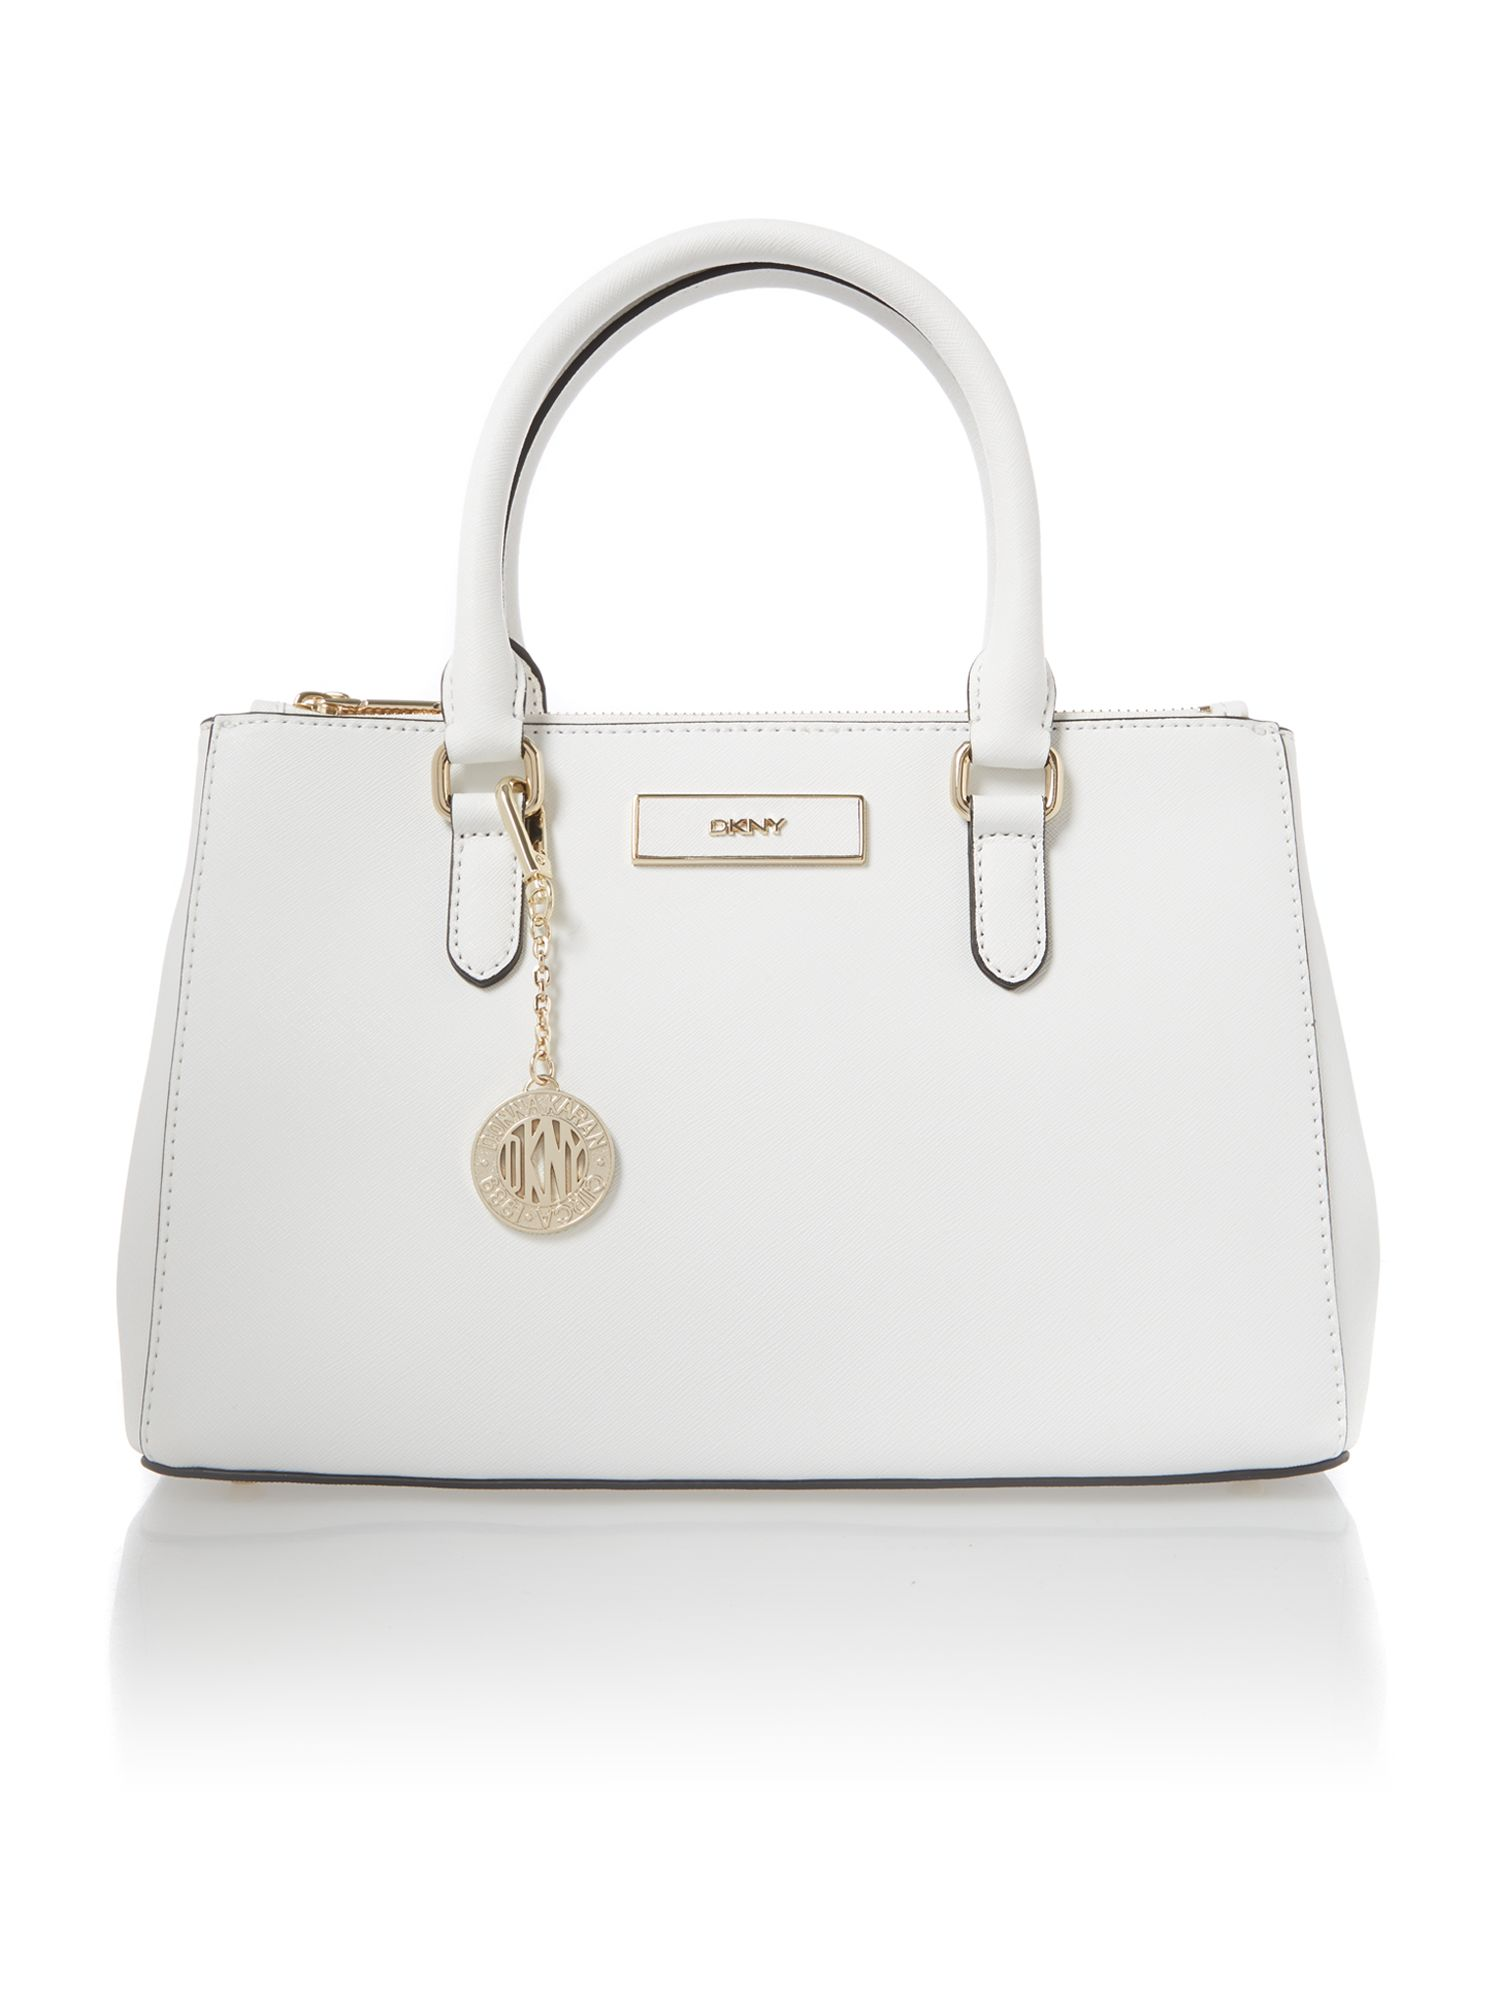 Saffiano white small tote bag